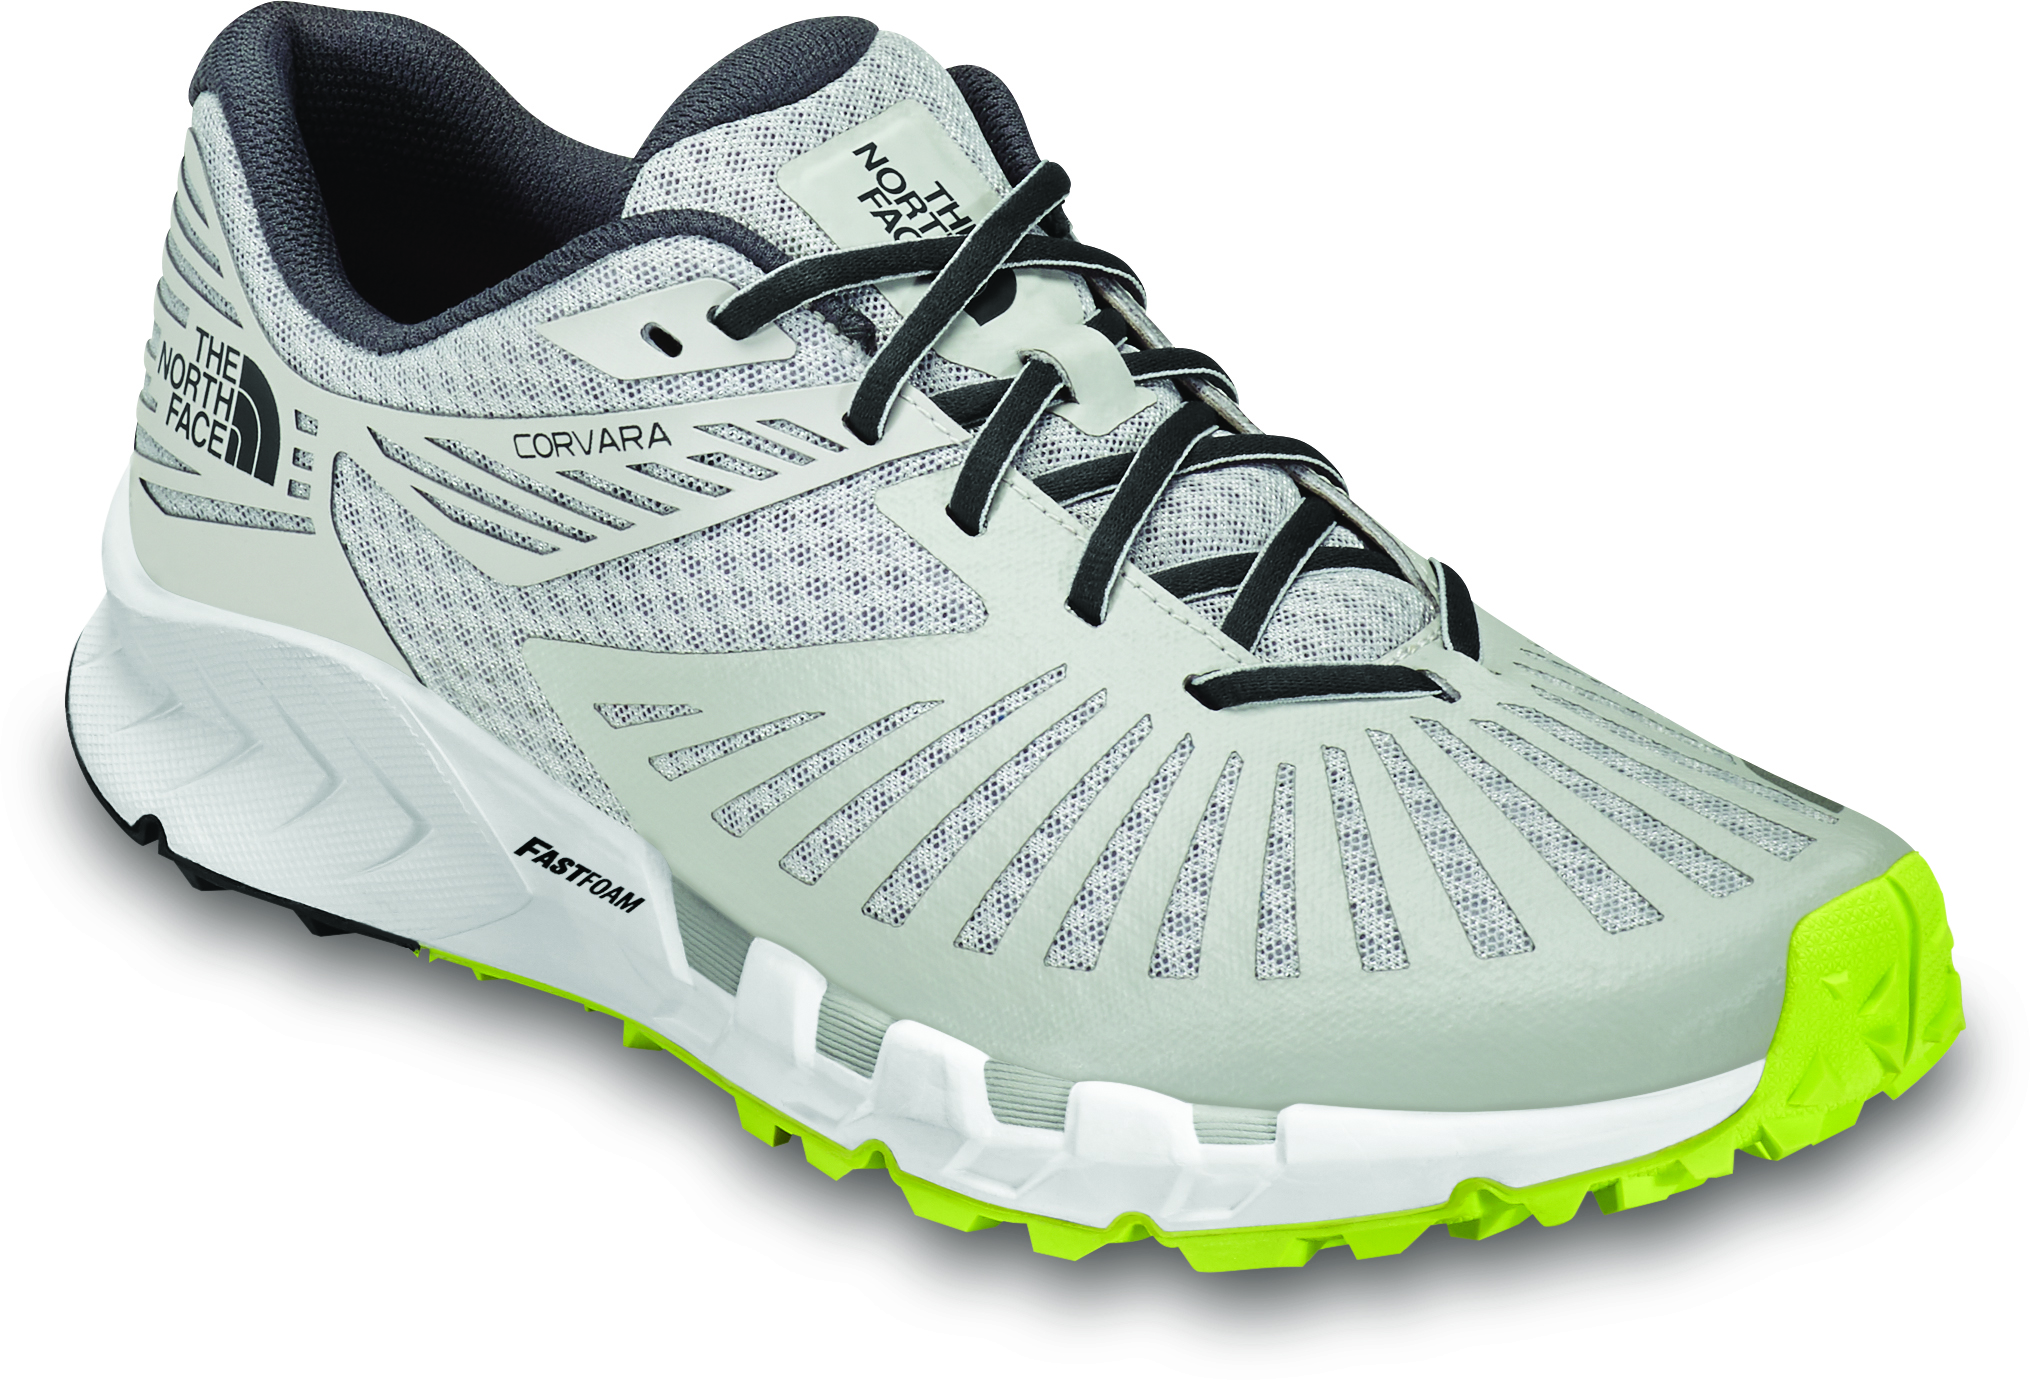 b3743aa2a The North Face Corvara Trail Running Shoes - Men's